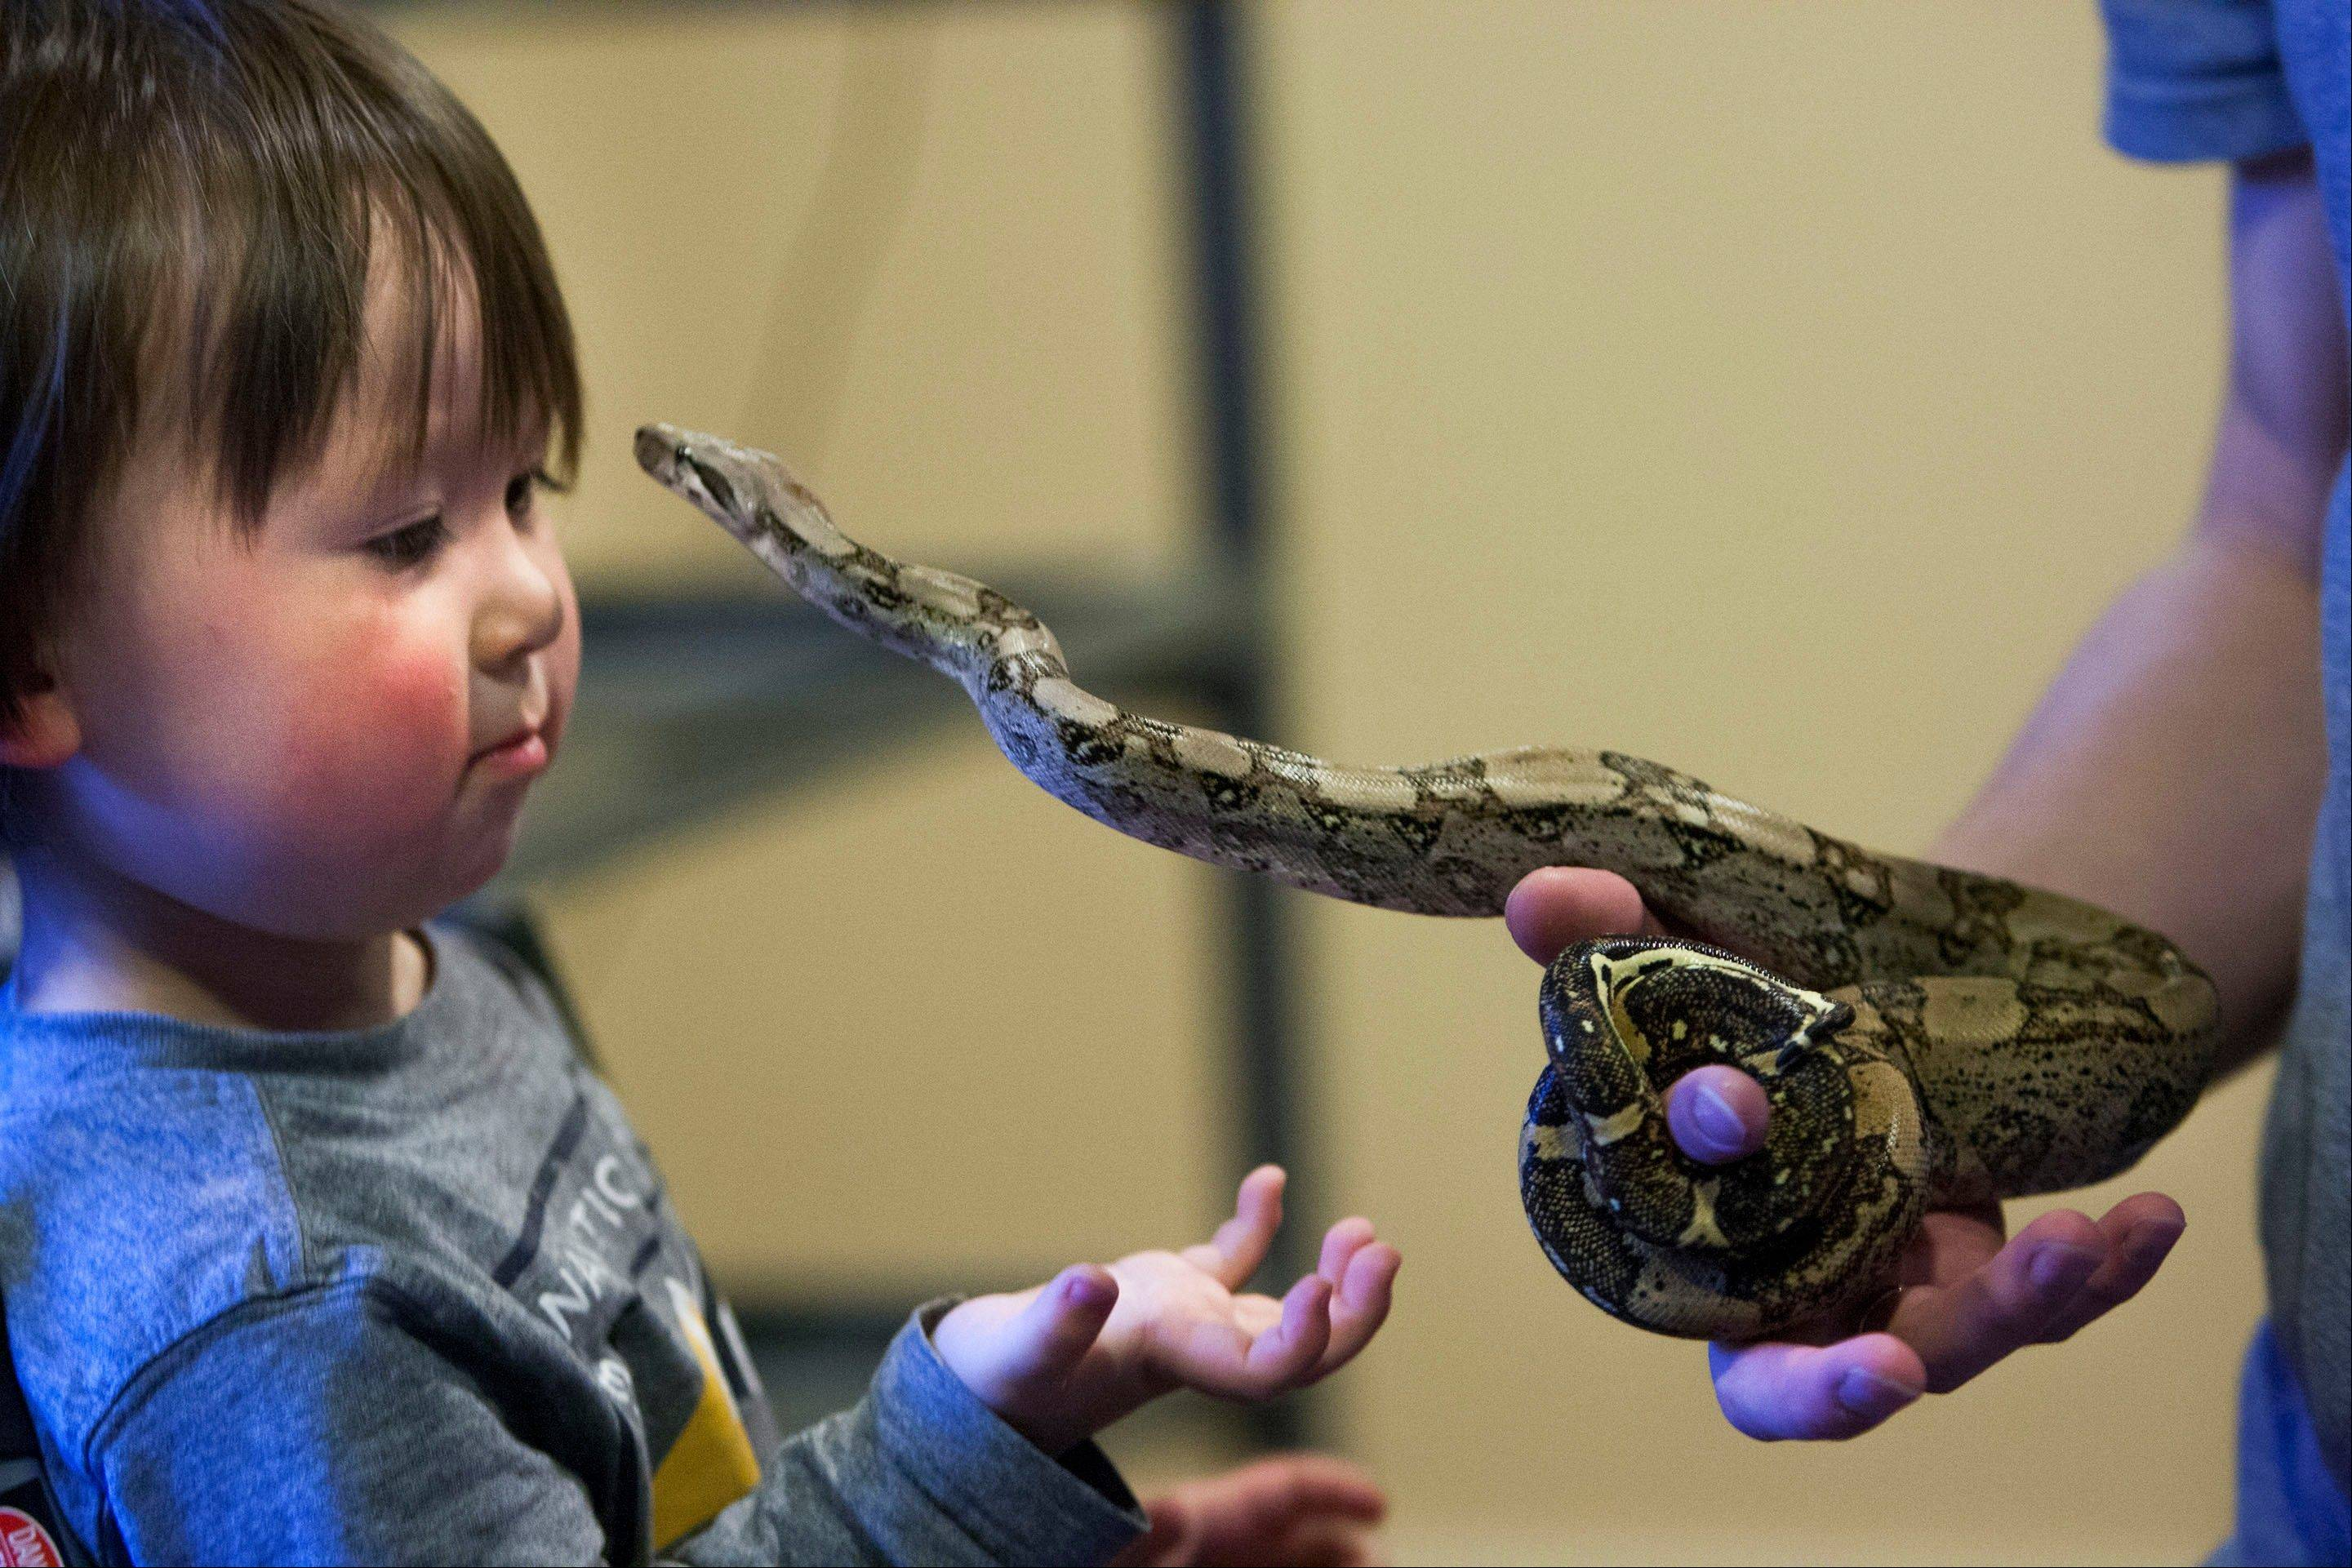 Caiden Cobb admires one of his father's snakes in Cottonwood Heights, Utah. Thomas Cobb has been ordered by police to get rid of all but one of his 29 exotic boa constrictor snakes because he doesn�t have an exotic pet permit.